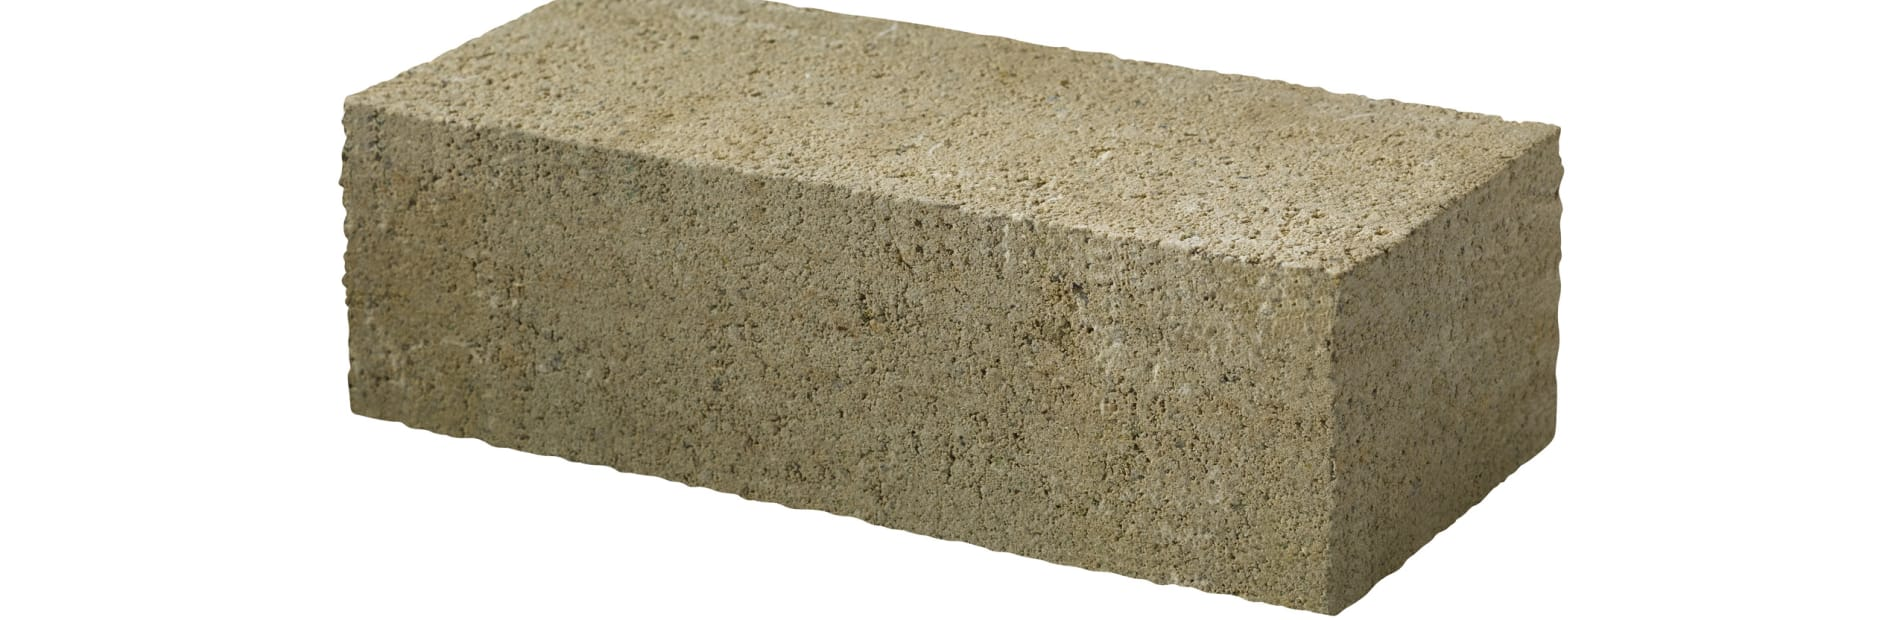 Dense Concrete Common Brick